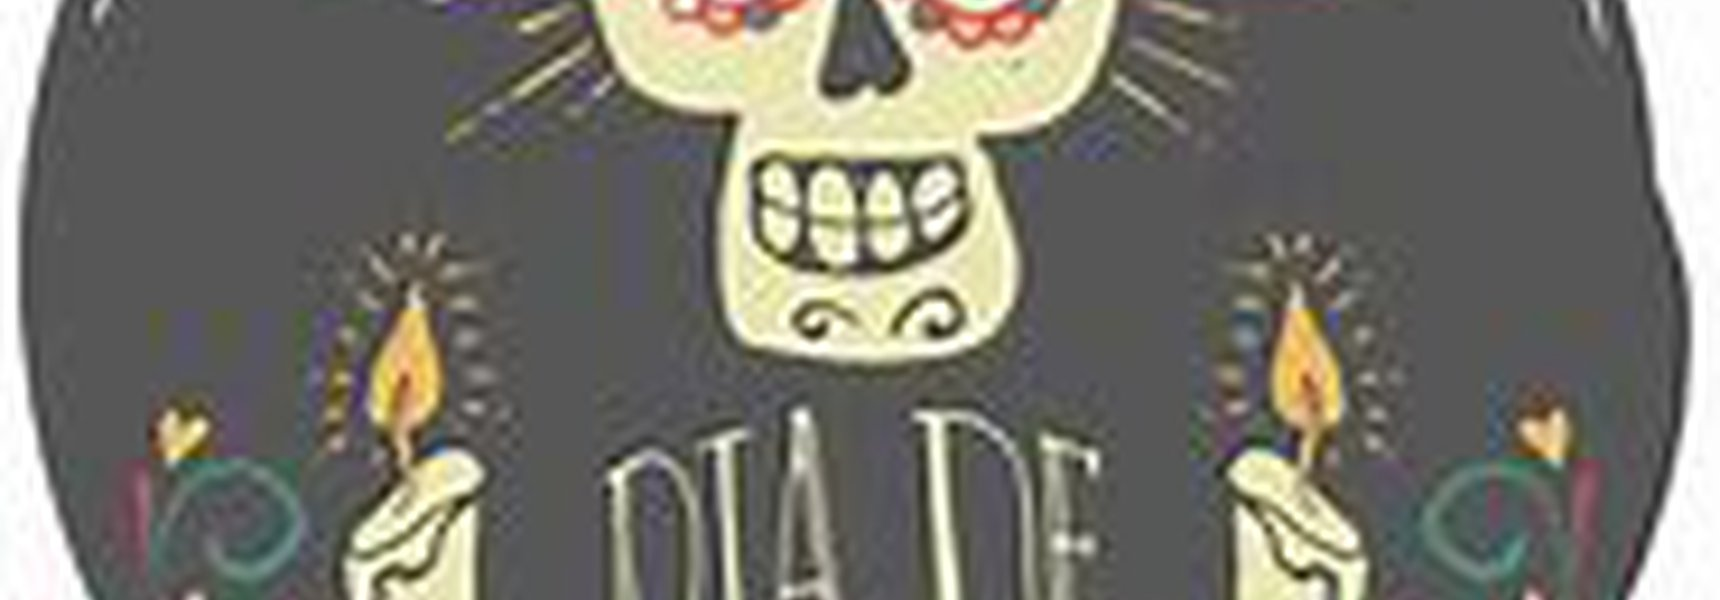 Cultural Celebration: Day of the Dead